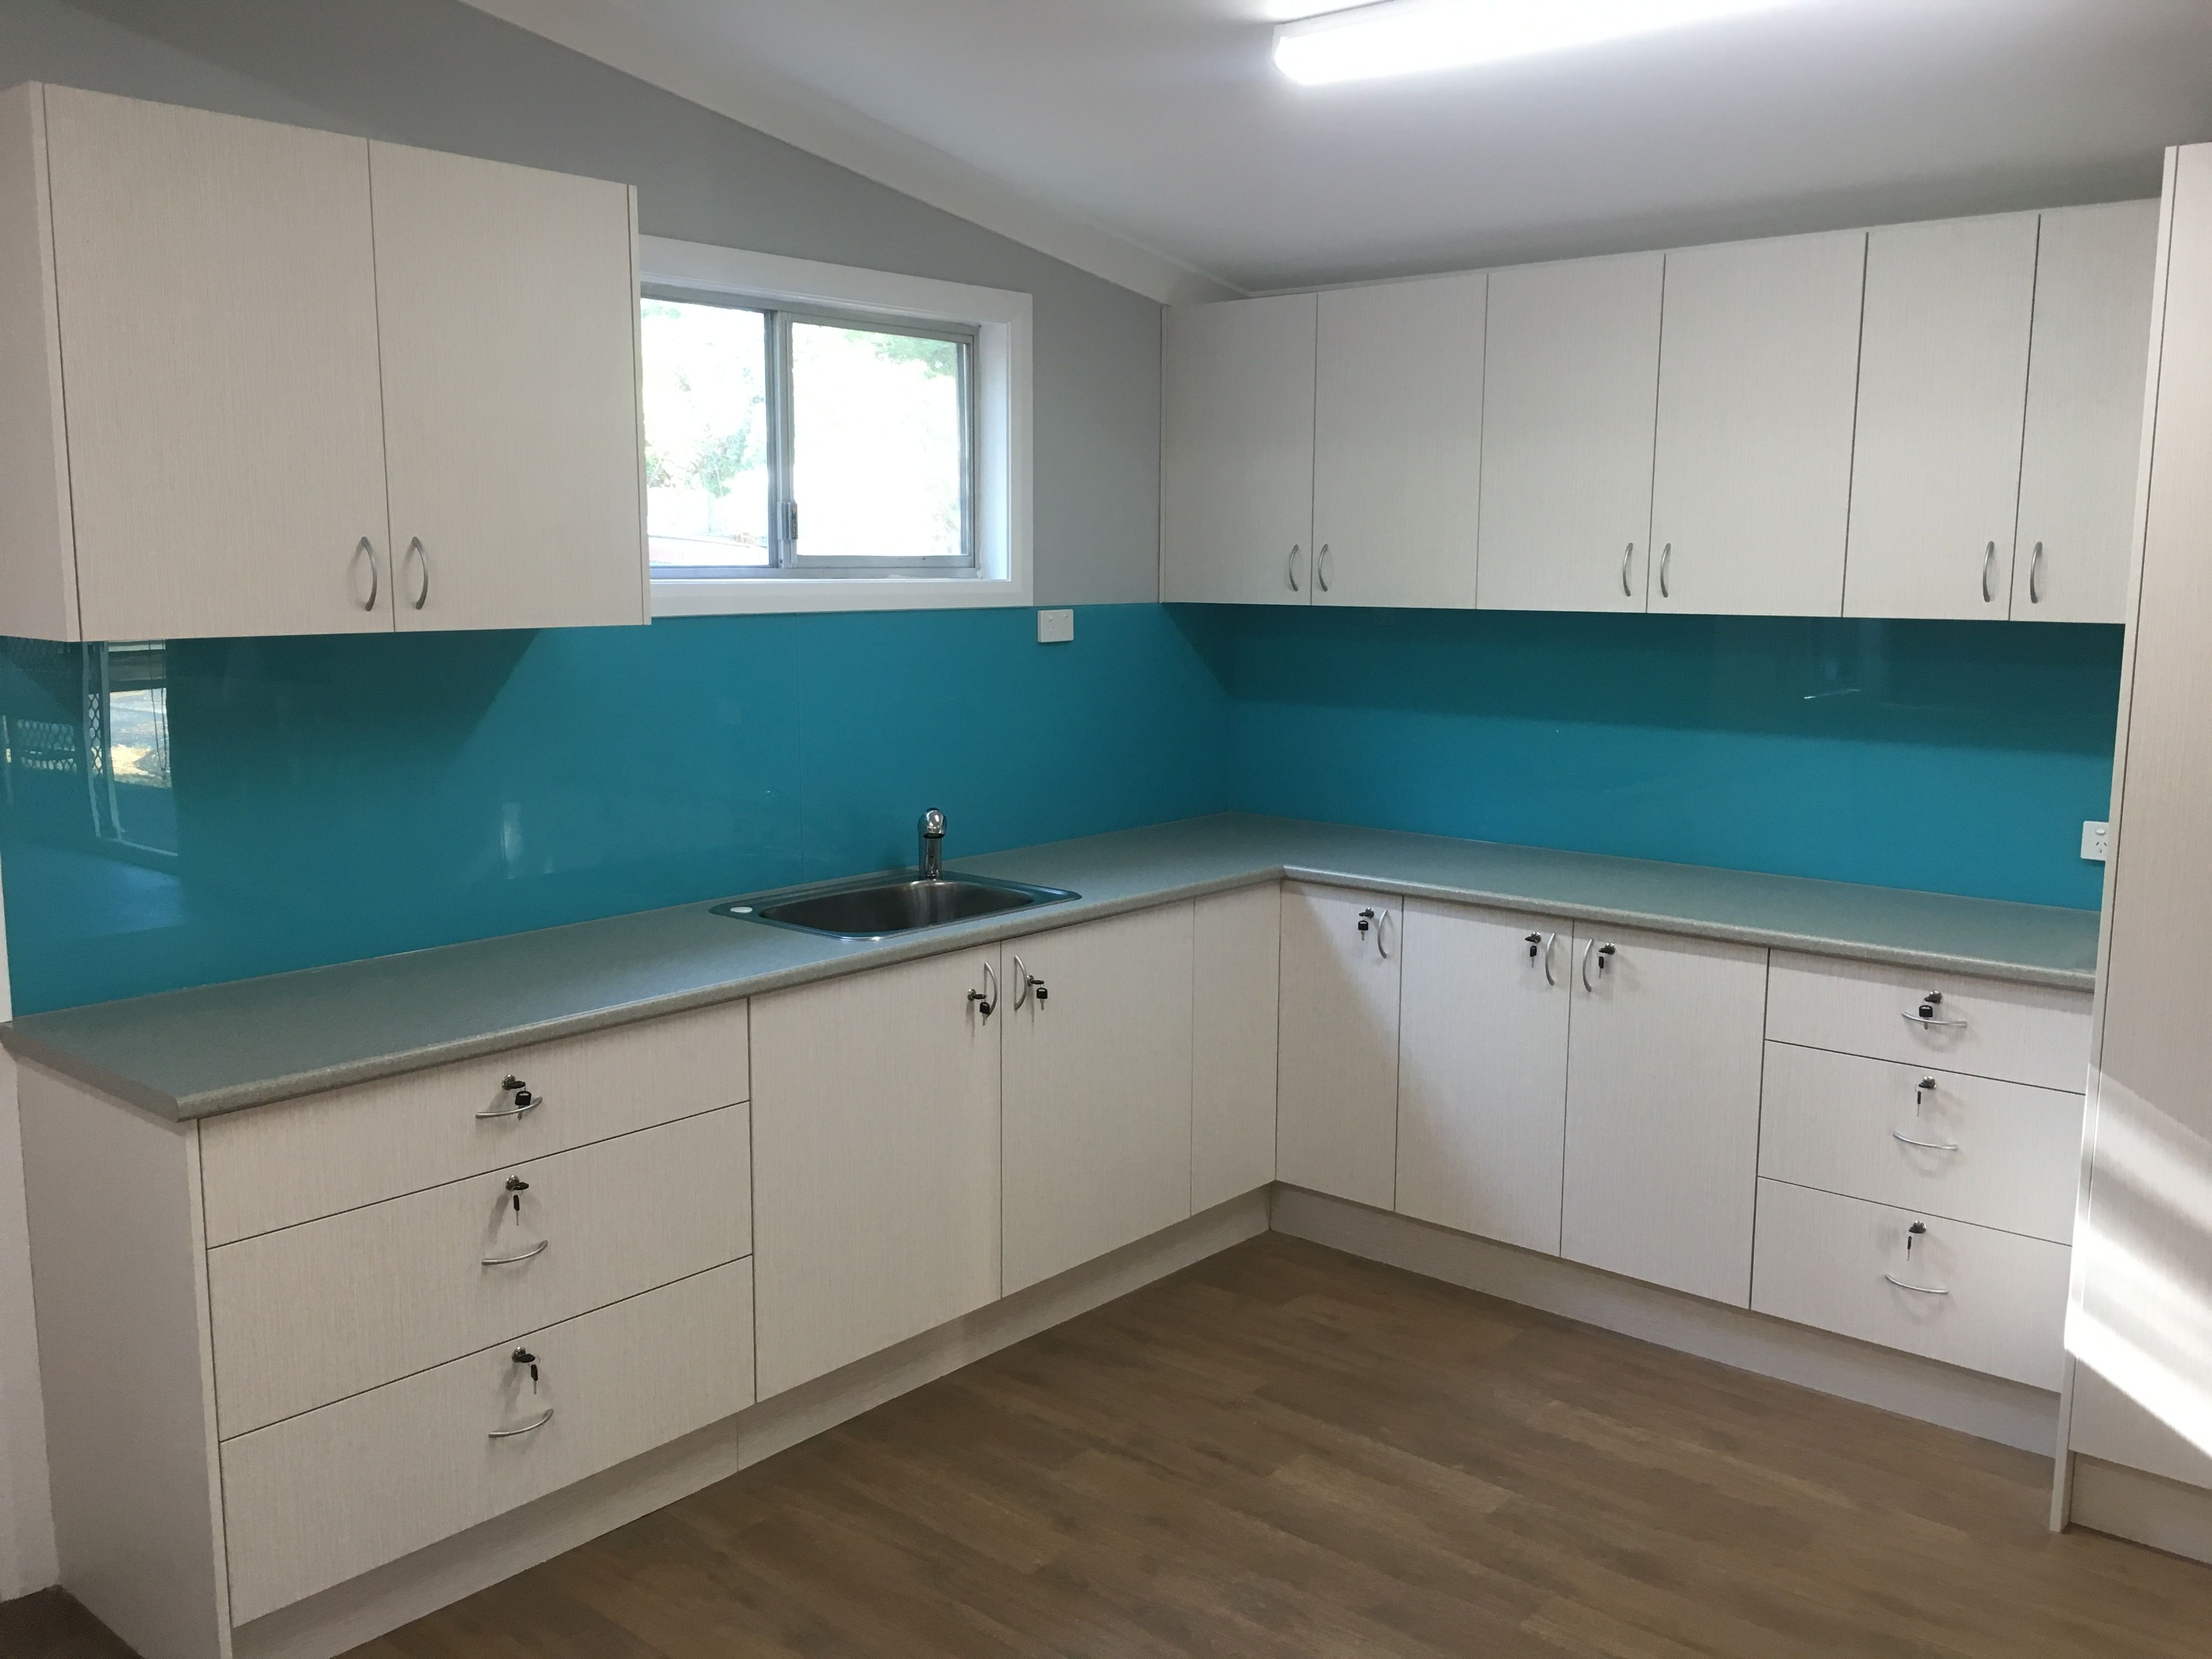 Use The #acrylicsplashbacks #archirtects, #builders, #designers And #DIYu0027